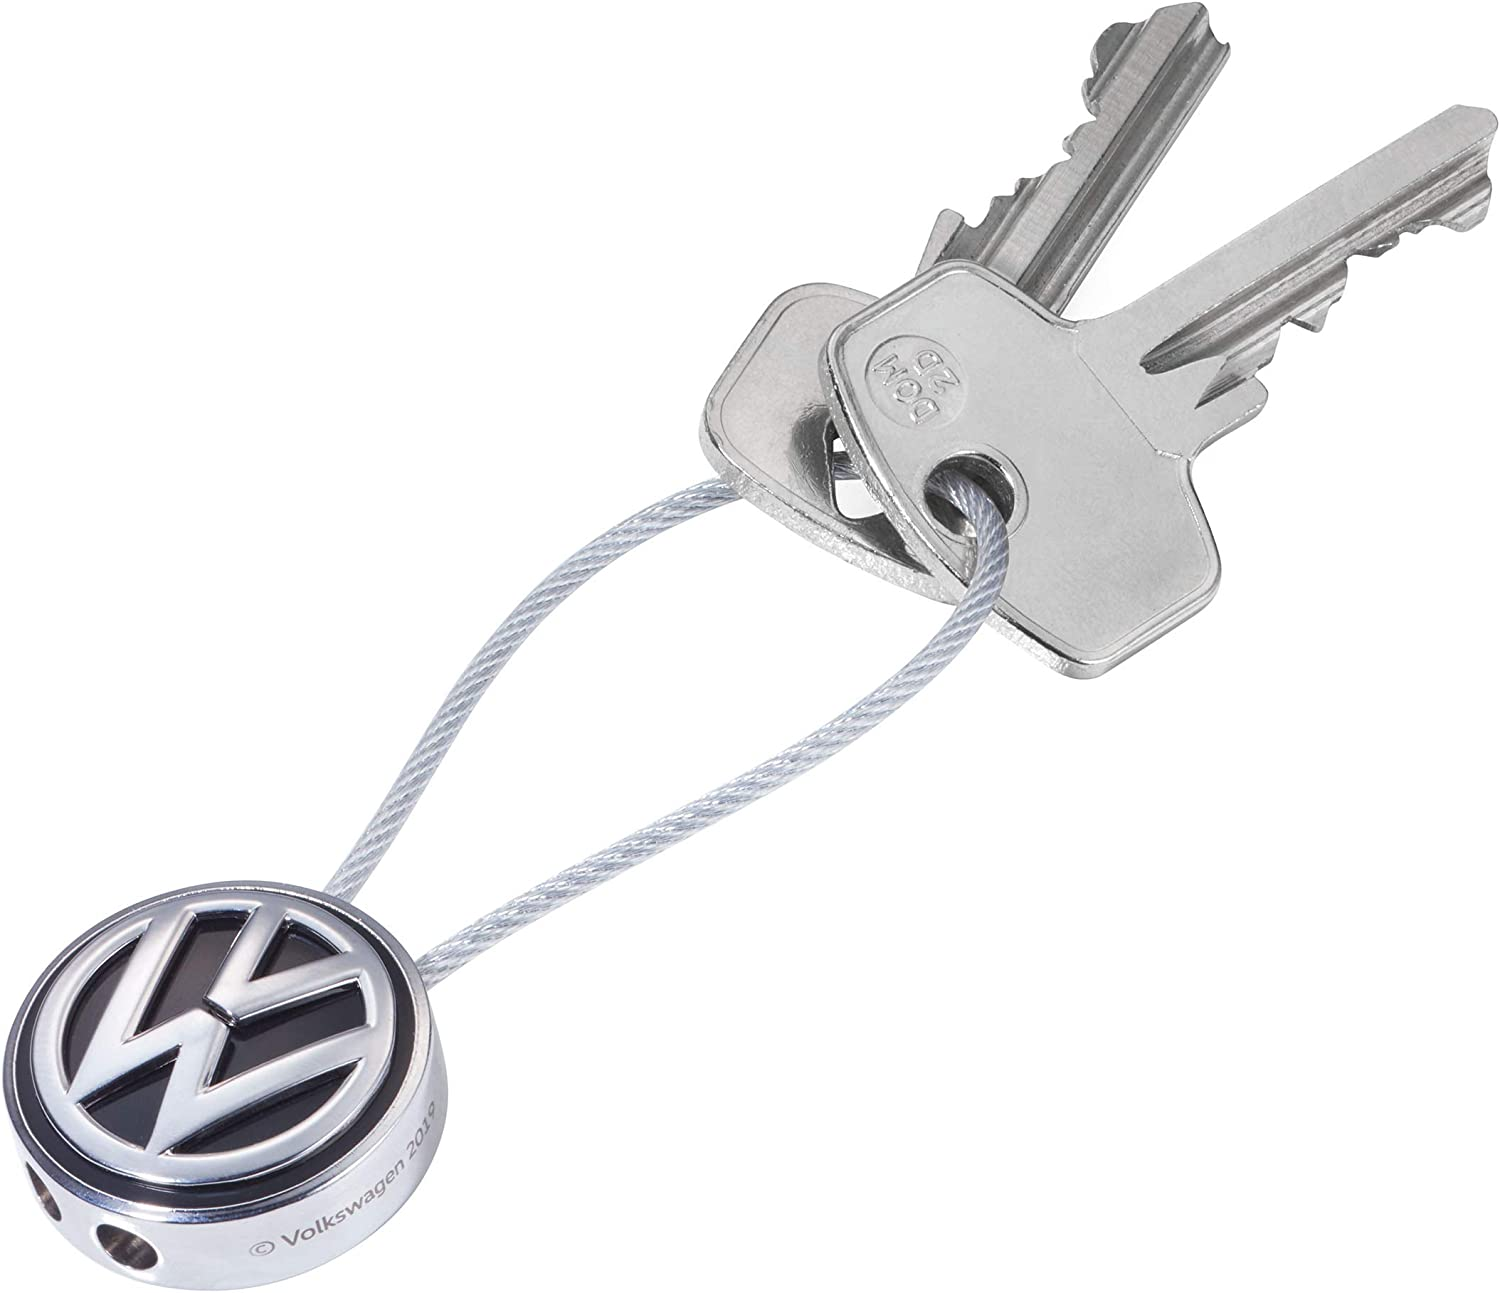 Volkswagen 000087010BQ Keyring with VW Logo Diameter 37 mm